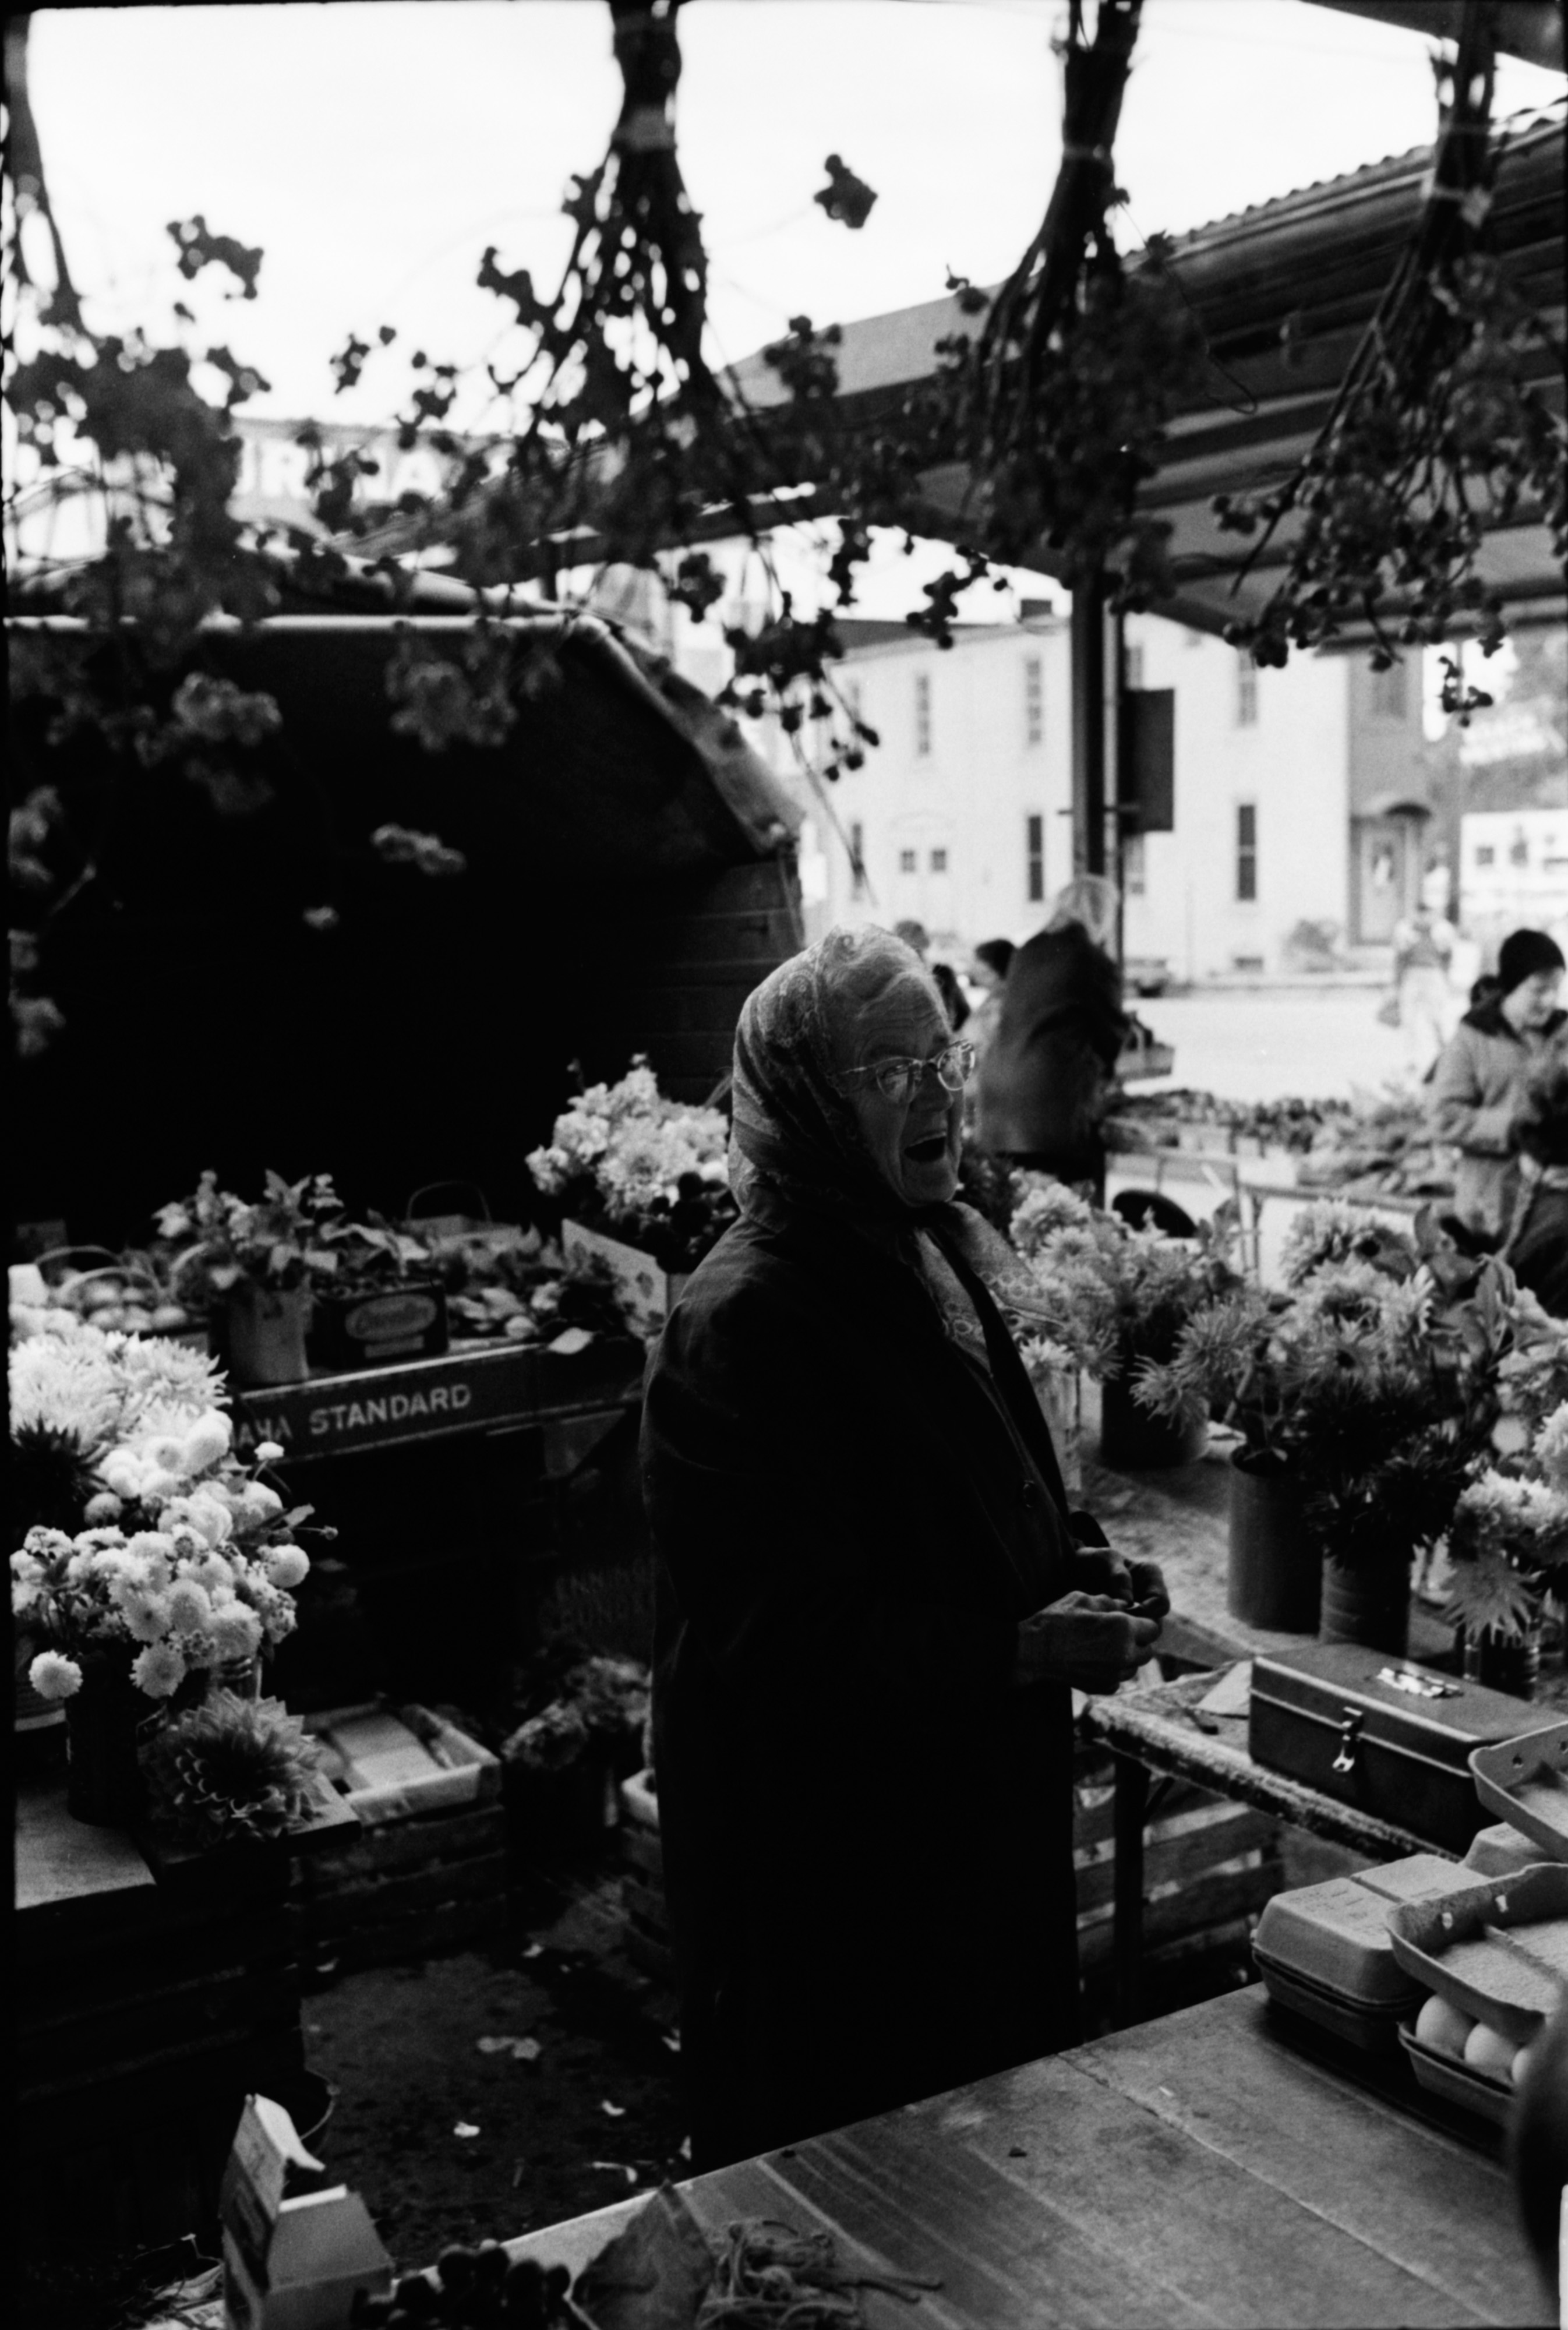 Vera Dieterle at her Farmers Market Booth, October 1968 image